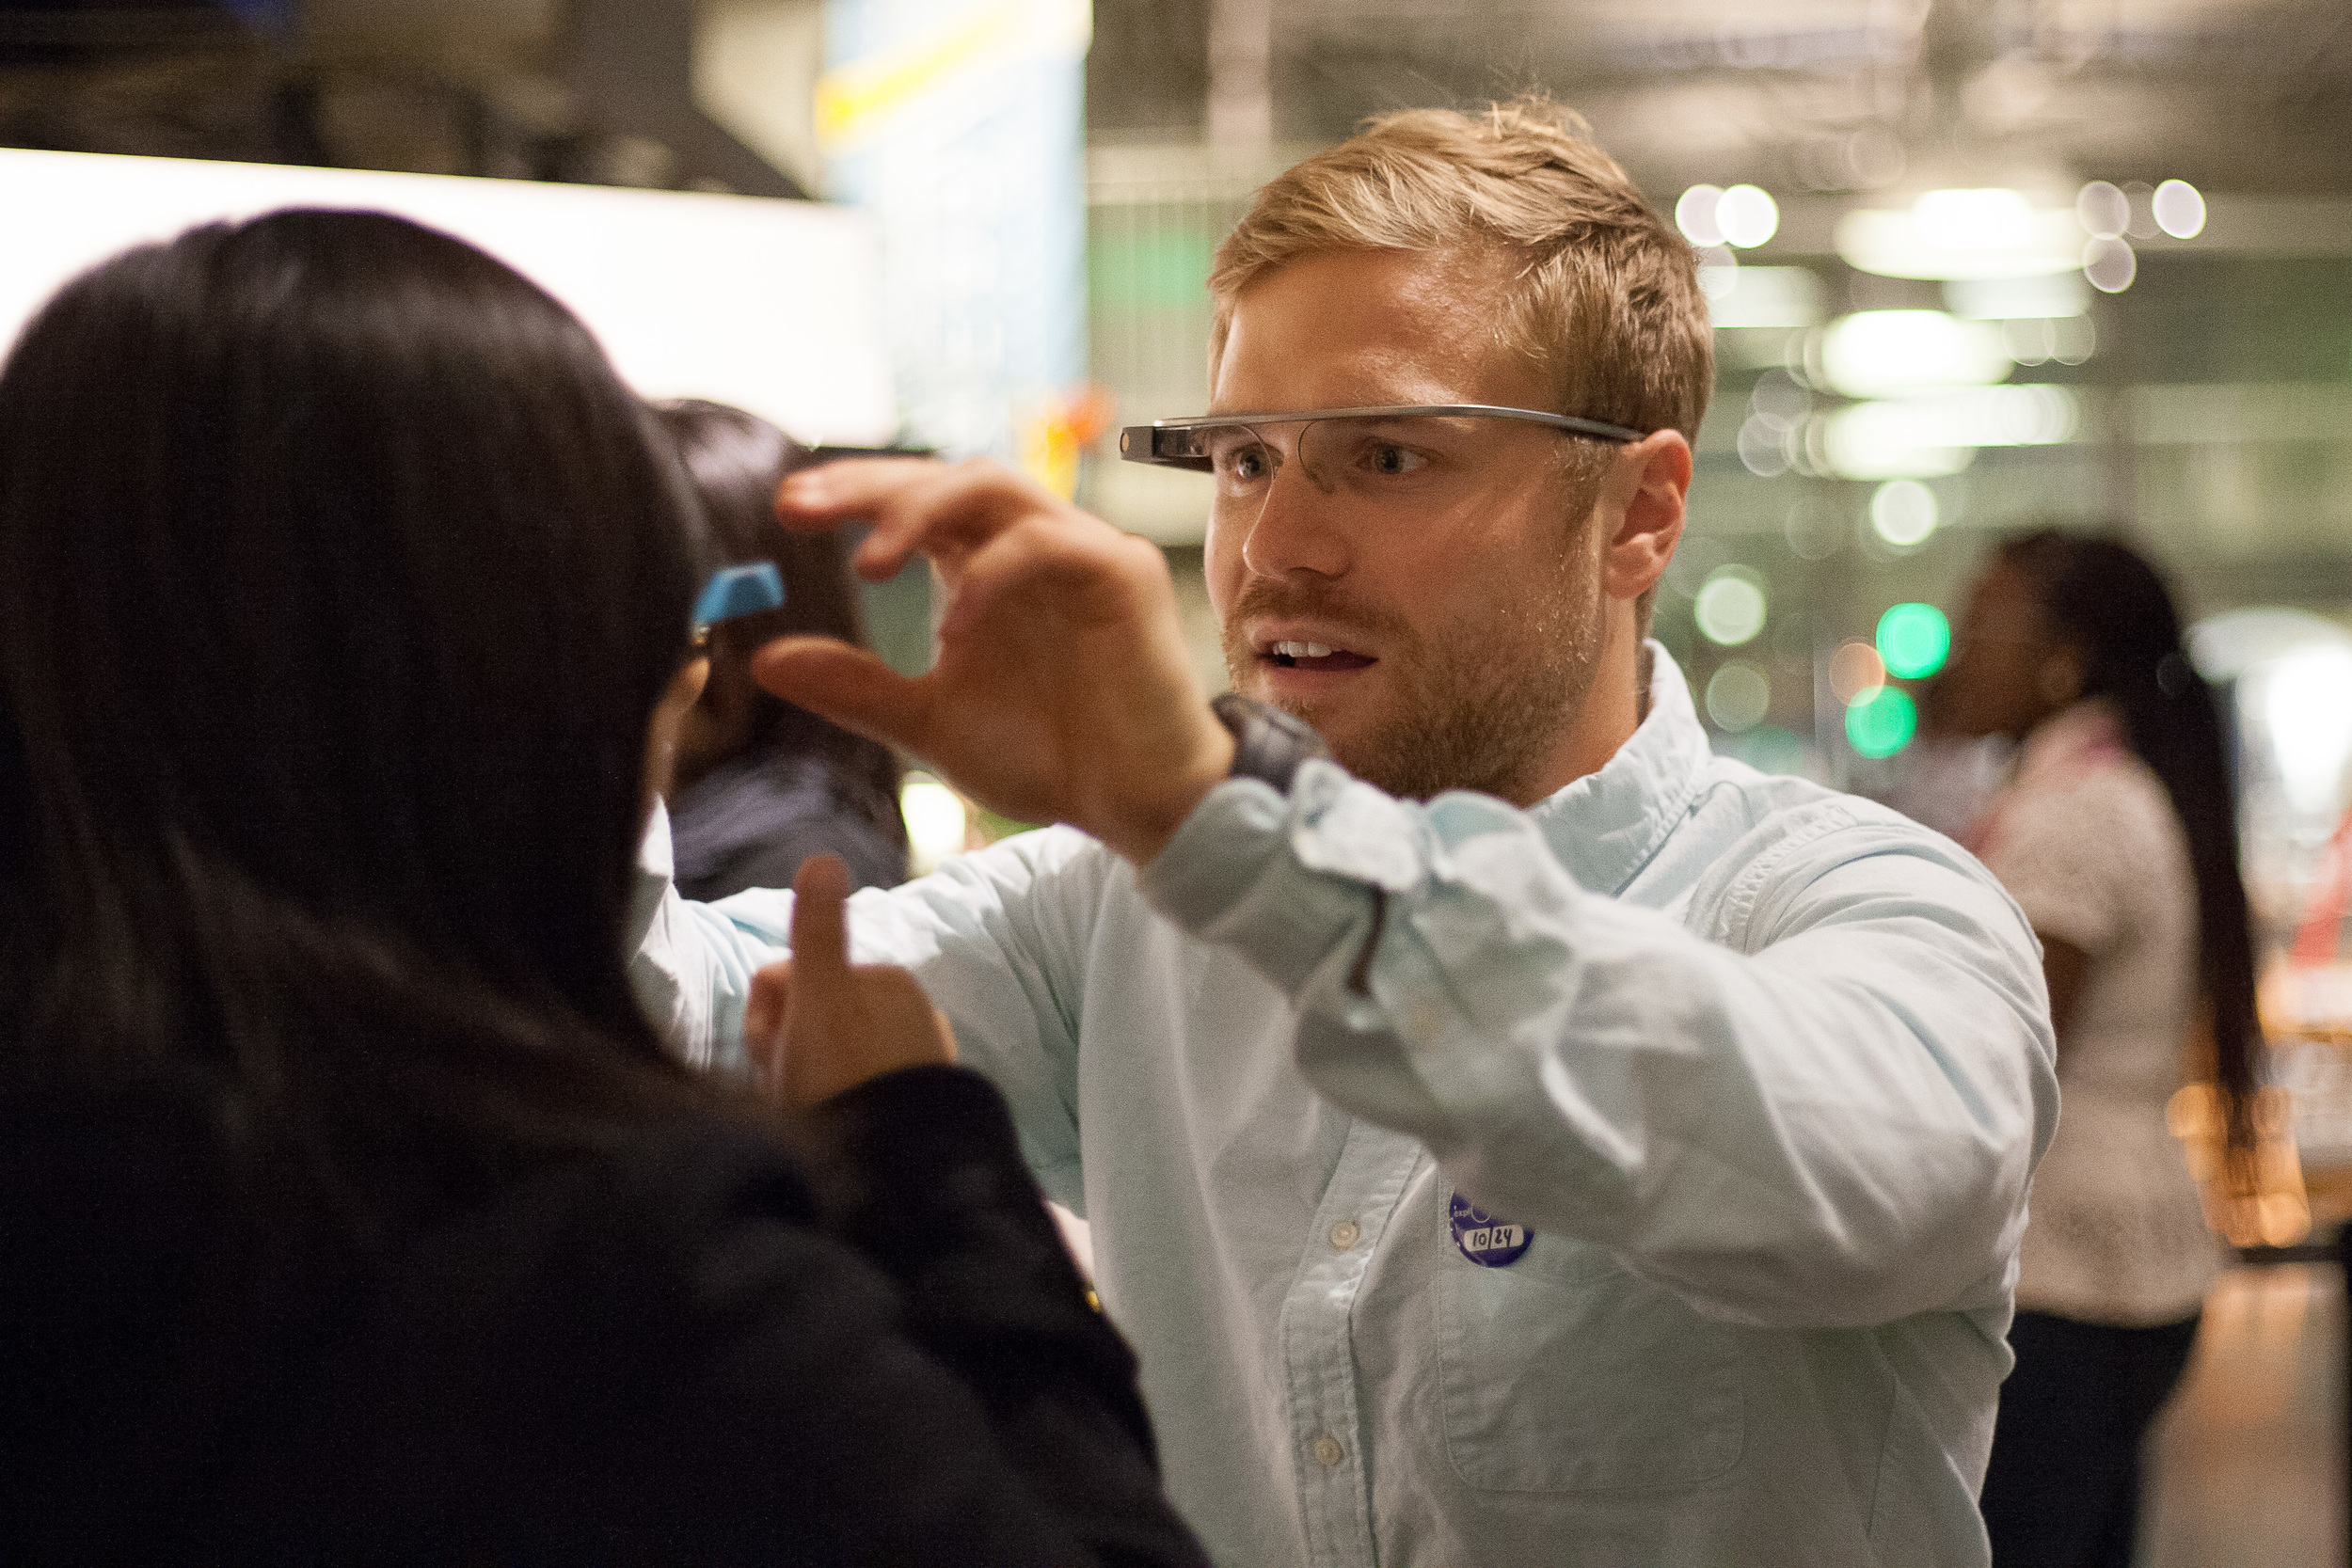 The Exploratorium hosted a number of Glass demo events as part of its After Dark programming.